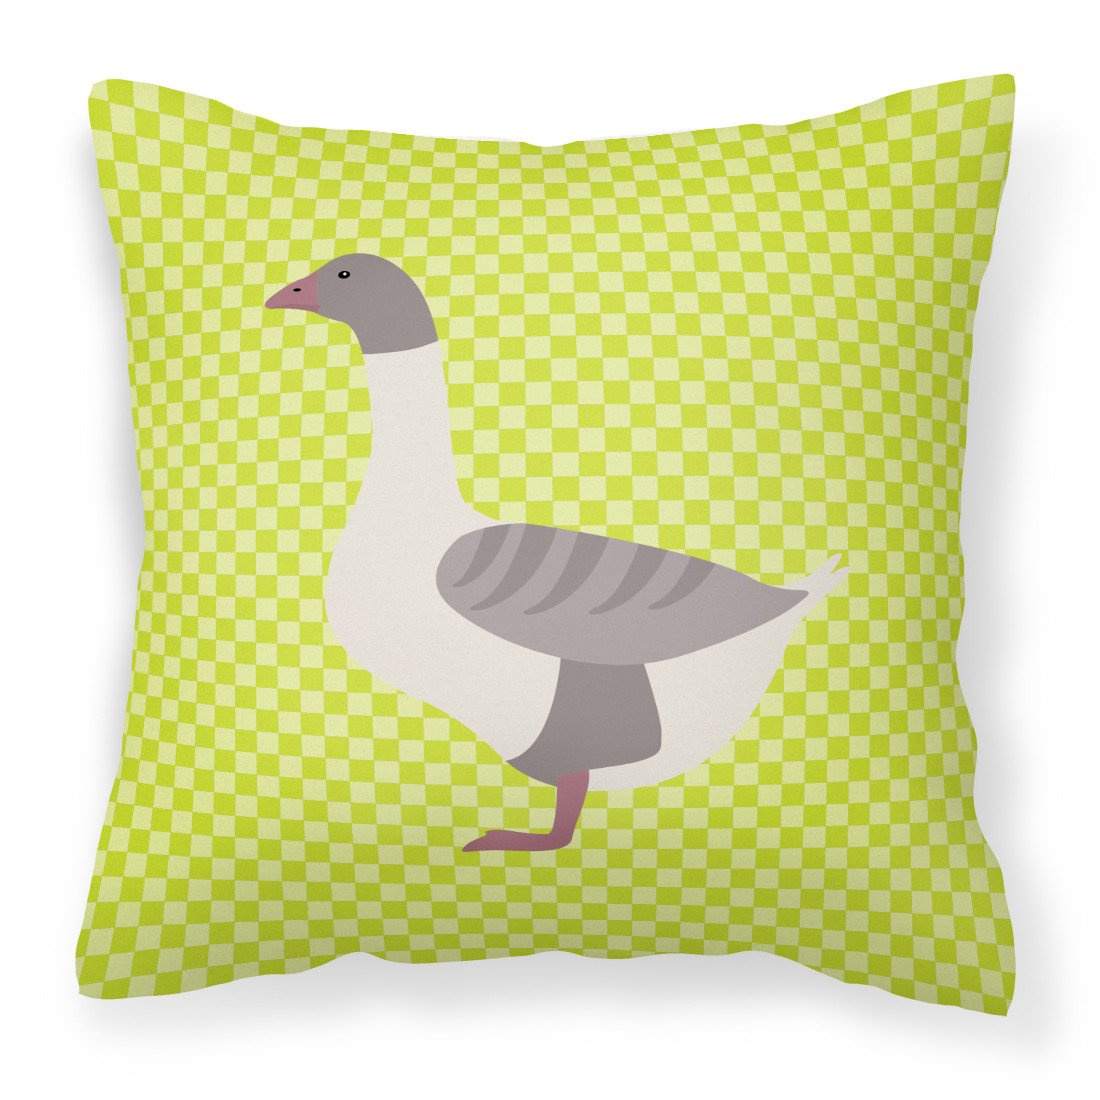 Buff Grey Back Goose Green Fabric Decorative Pillow BB7727PW1818 by Caroline's Treasures